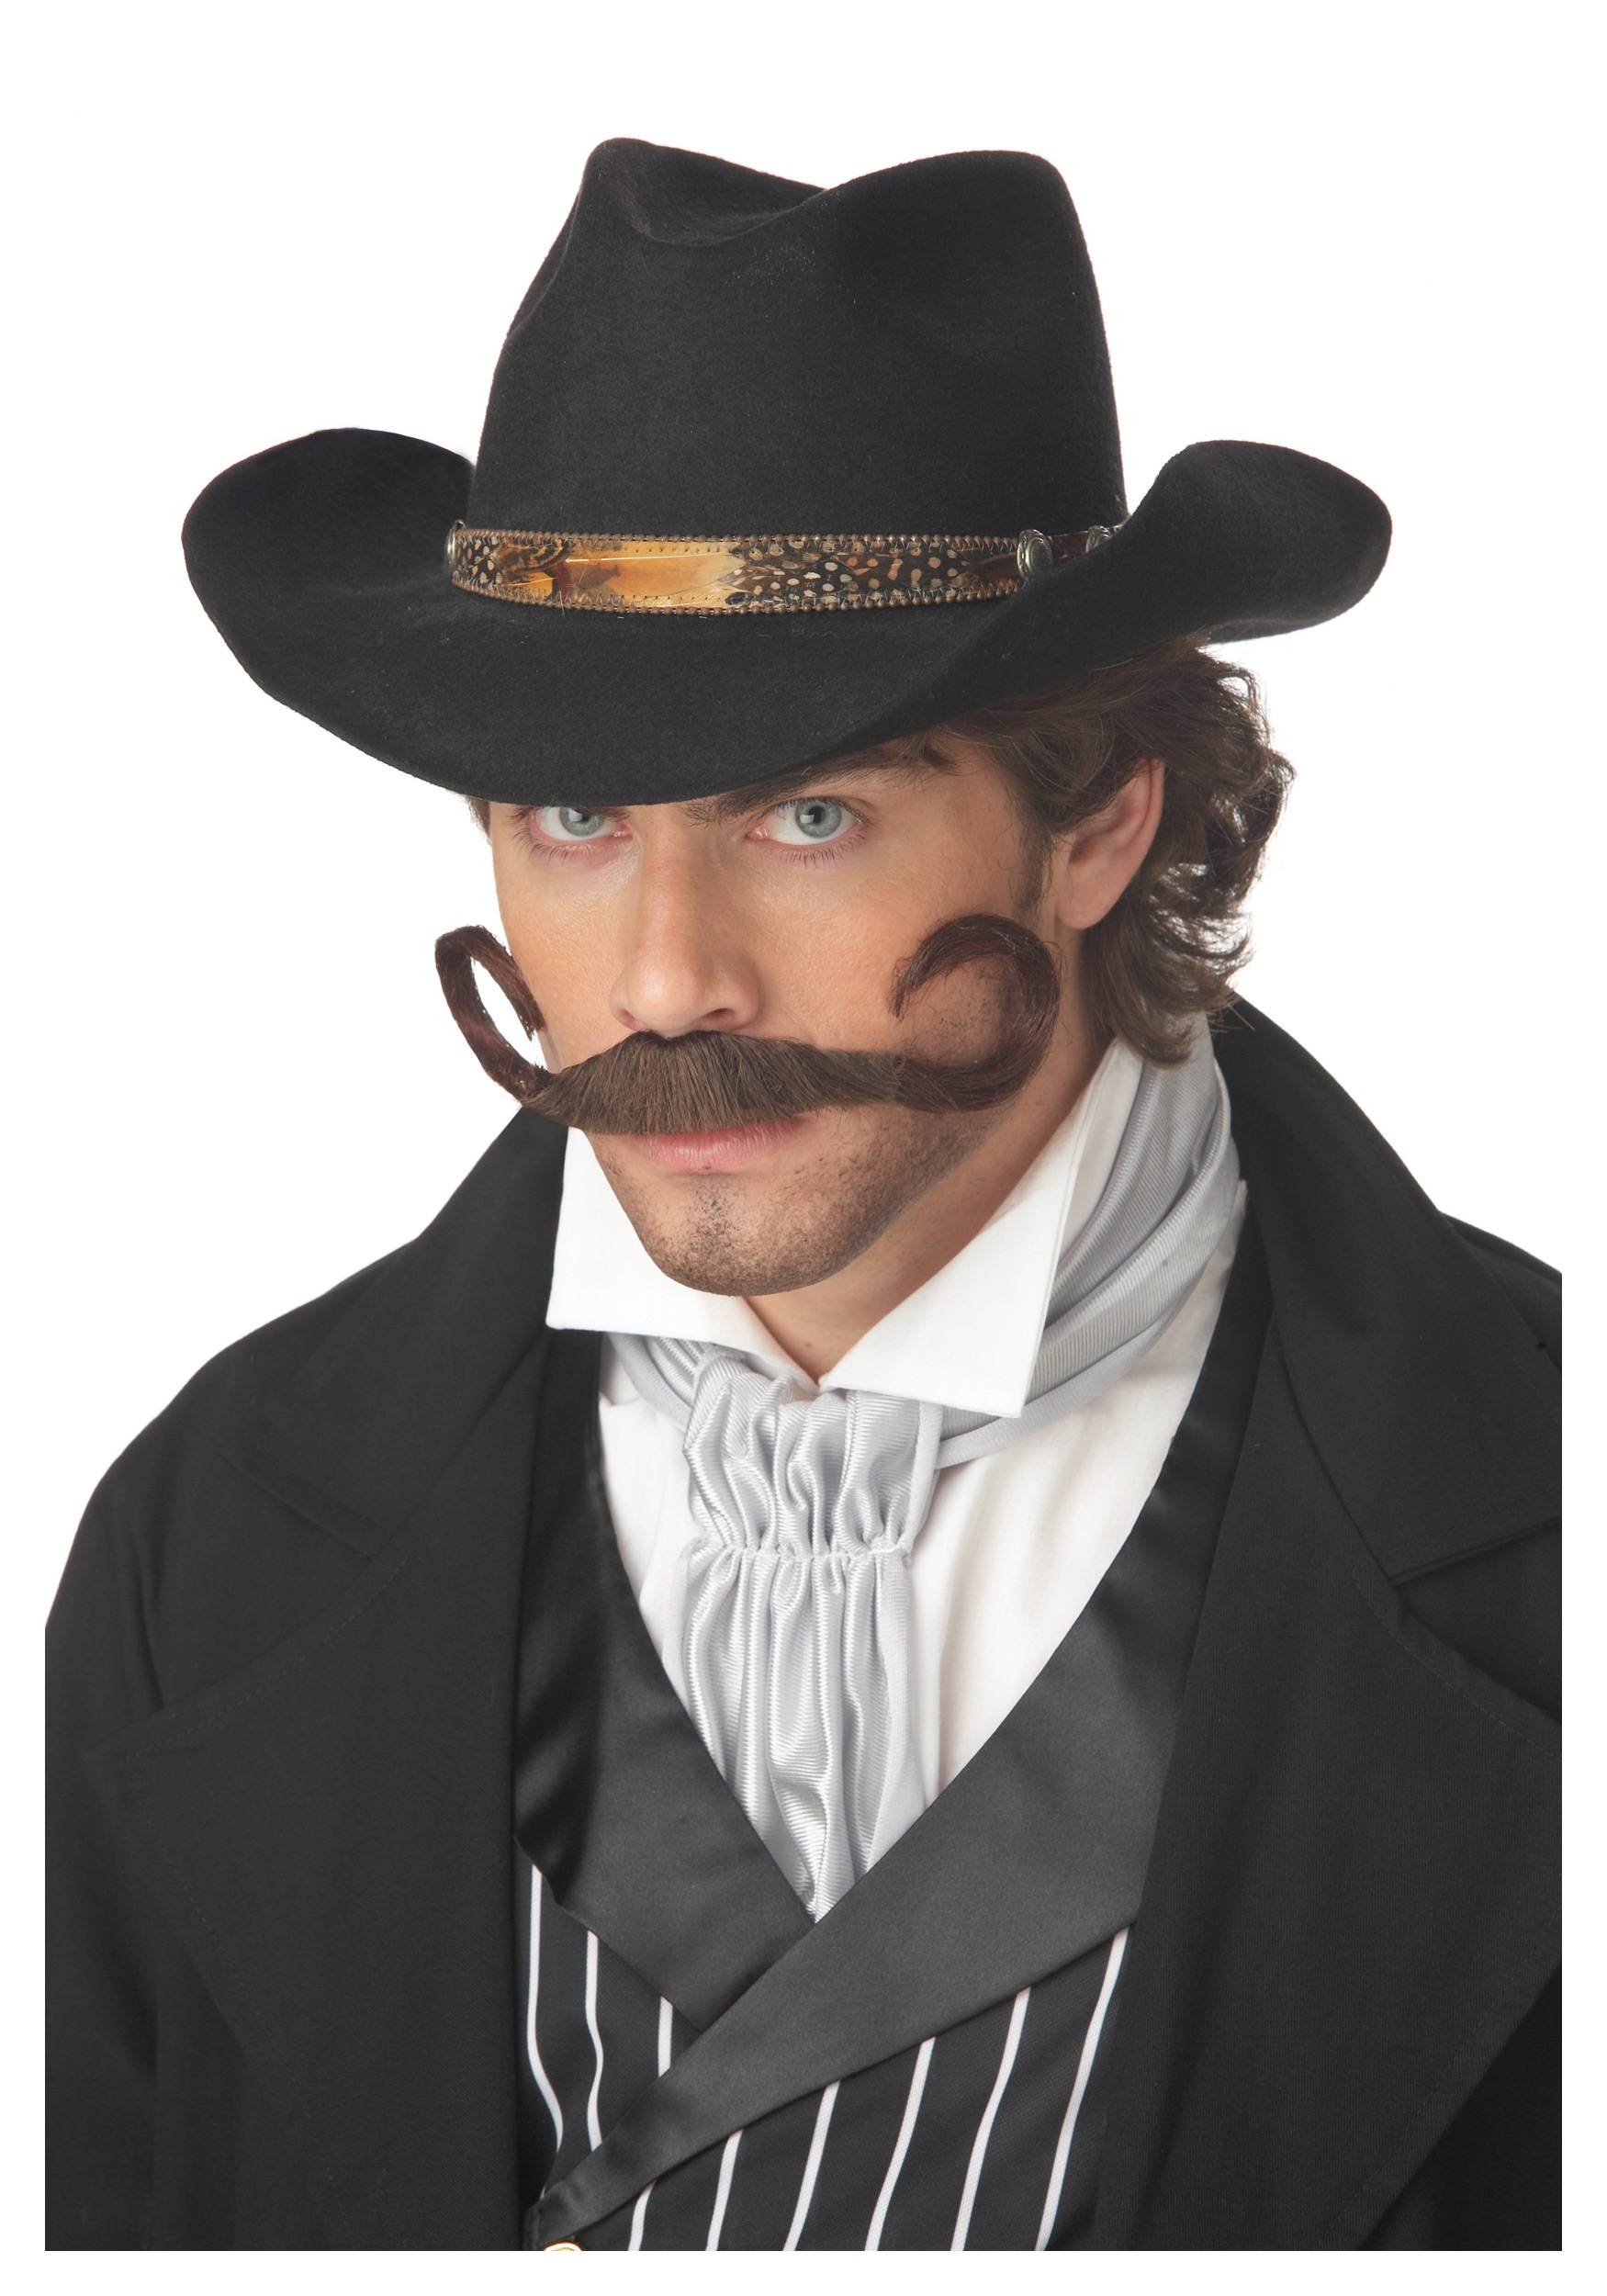 sc 1 st  Halloween Costumes : costumes with mustaches ideas  - Germanpascual.Com